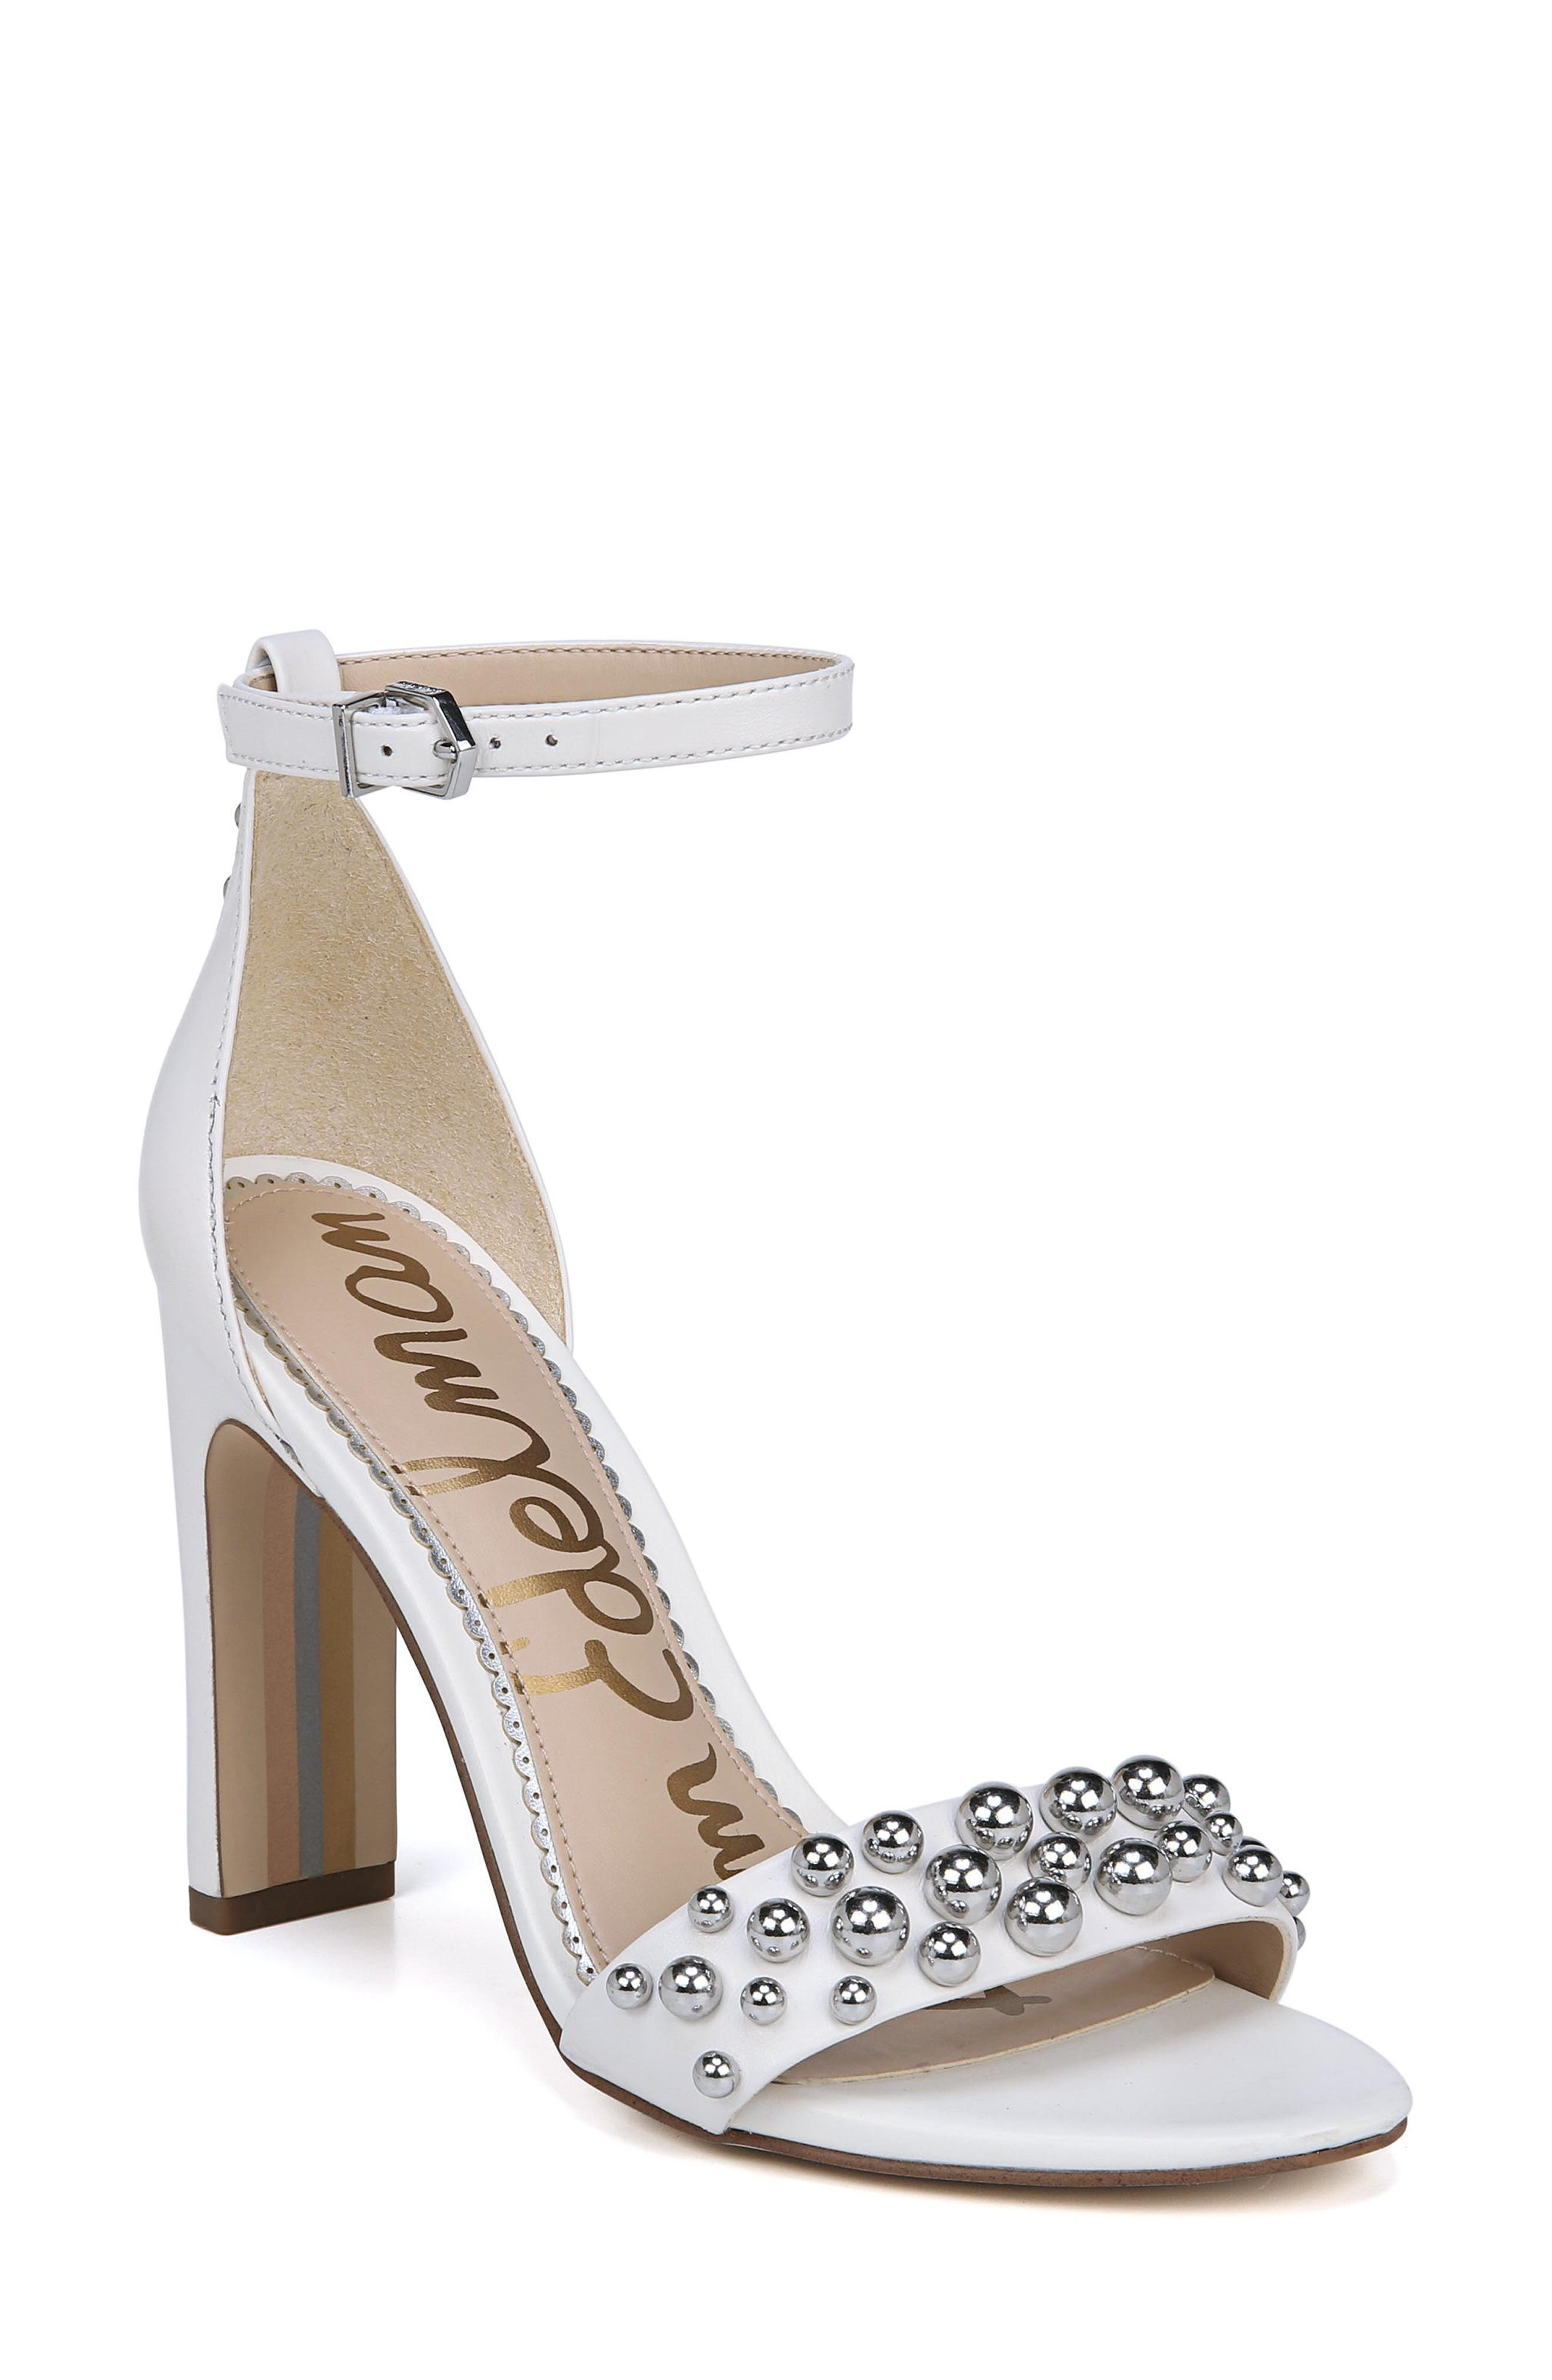 Yoshi Studded Ankle Strap Sandal,                         Main,                         color, BRIGHT WHITE LEATHER